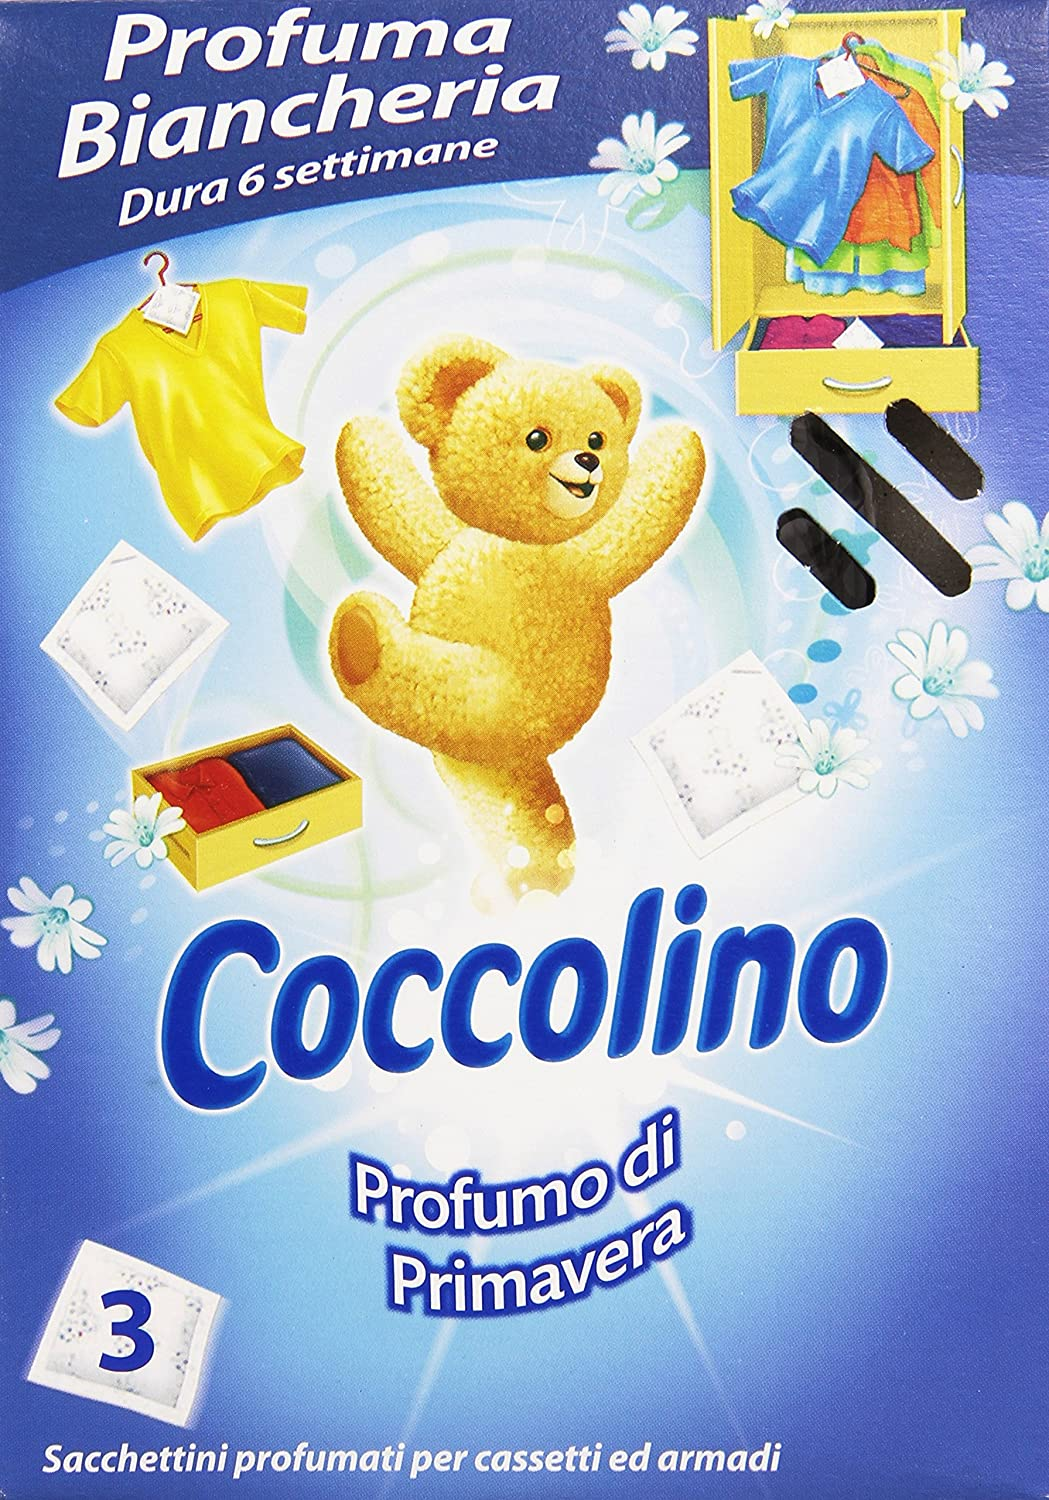 Coccolino–Assorted Laundry Fragrance, Perfumes–3Bags Perfumes-3Bags Unilever Italia (Retail)